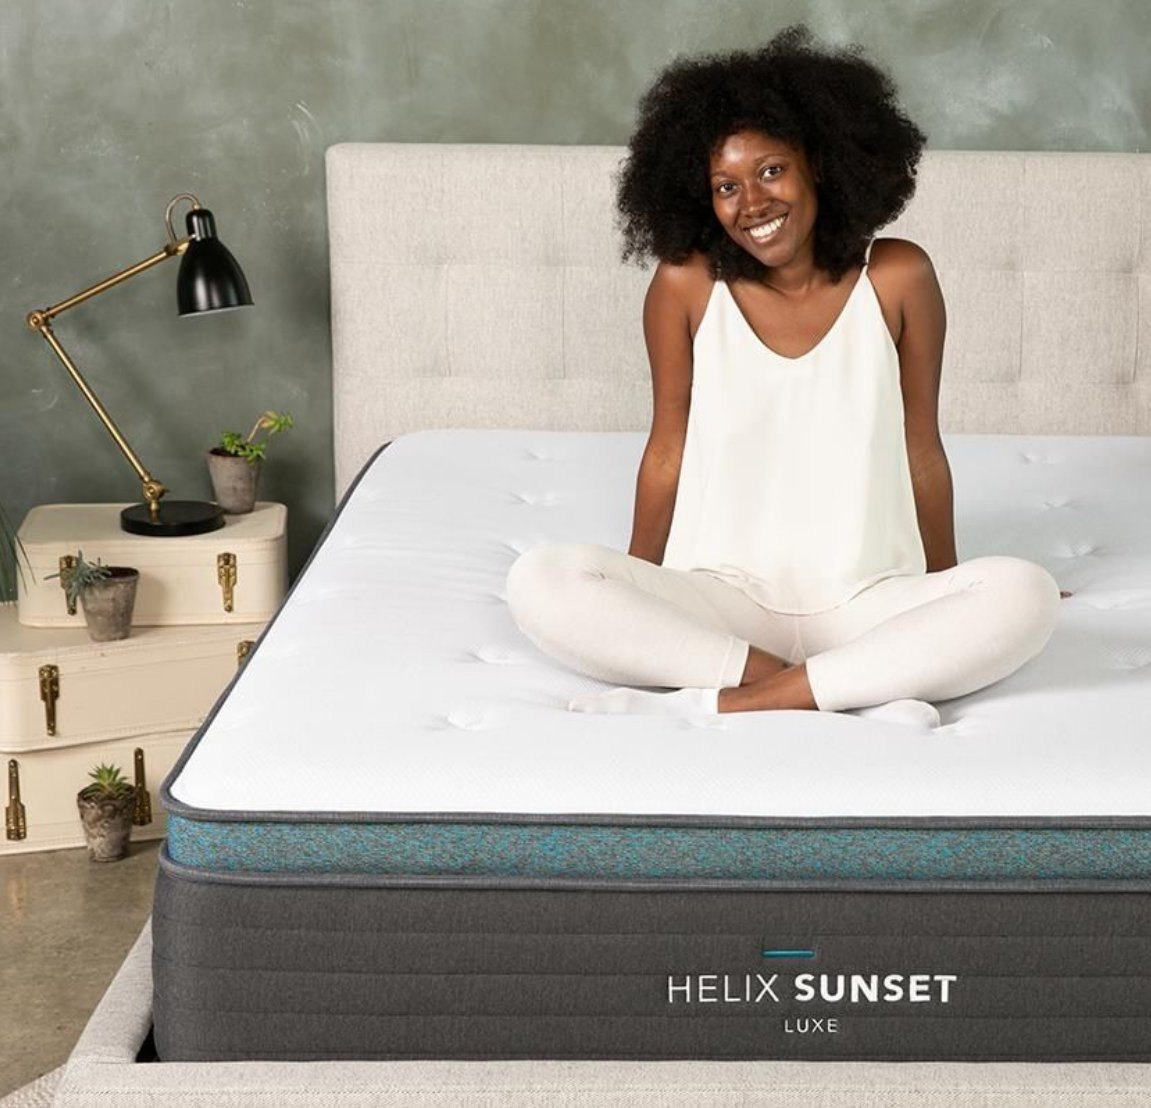 helix luxe mattress at a glance